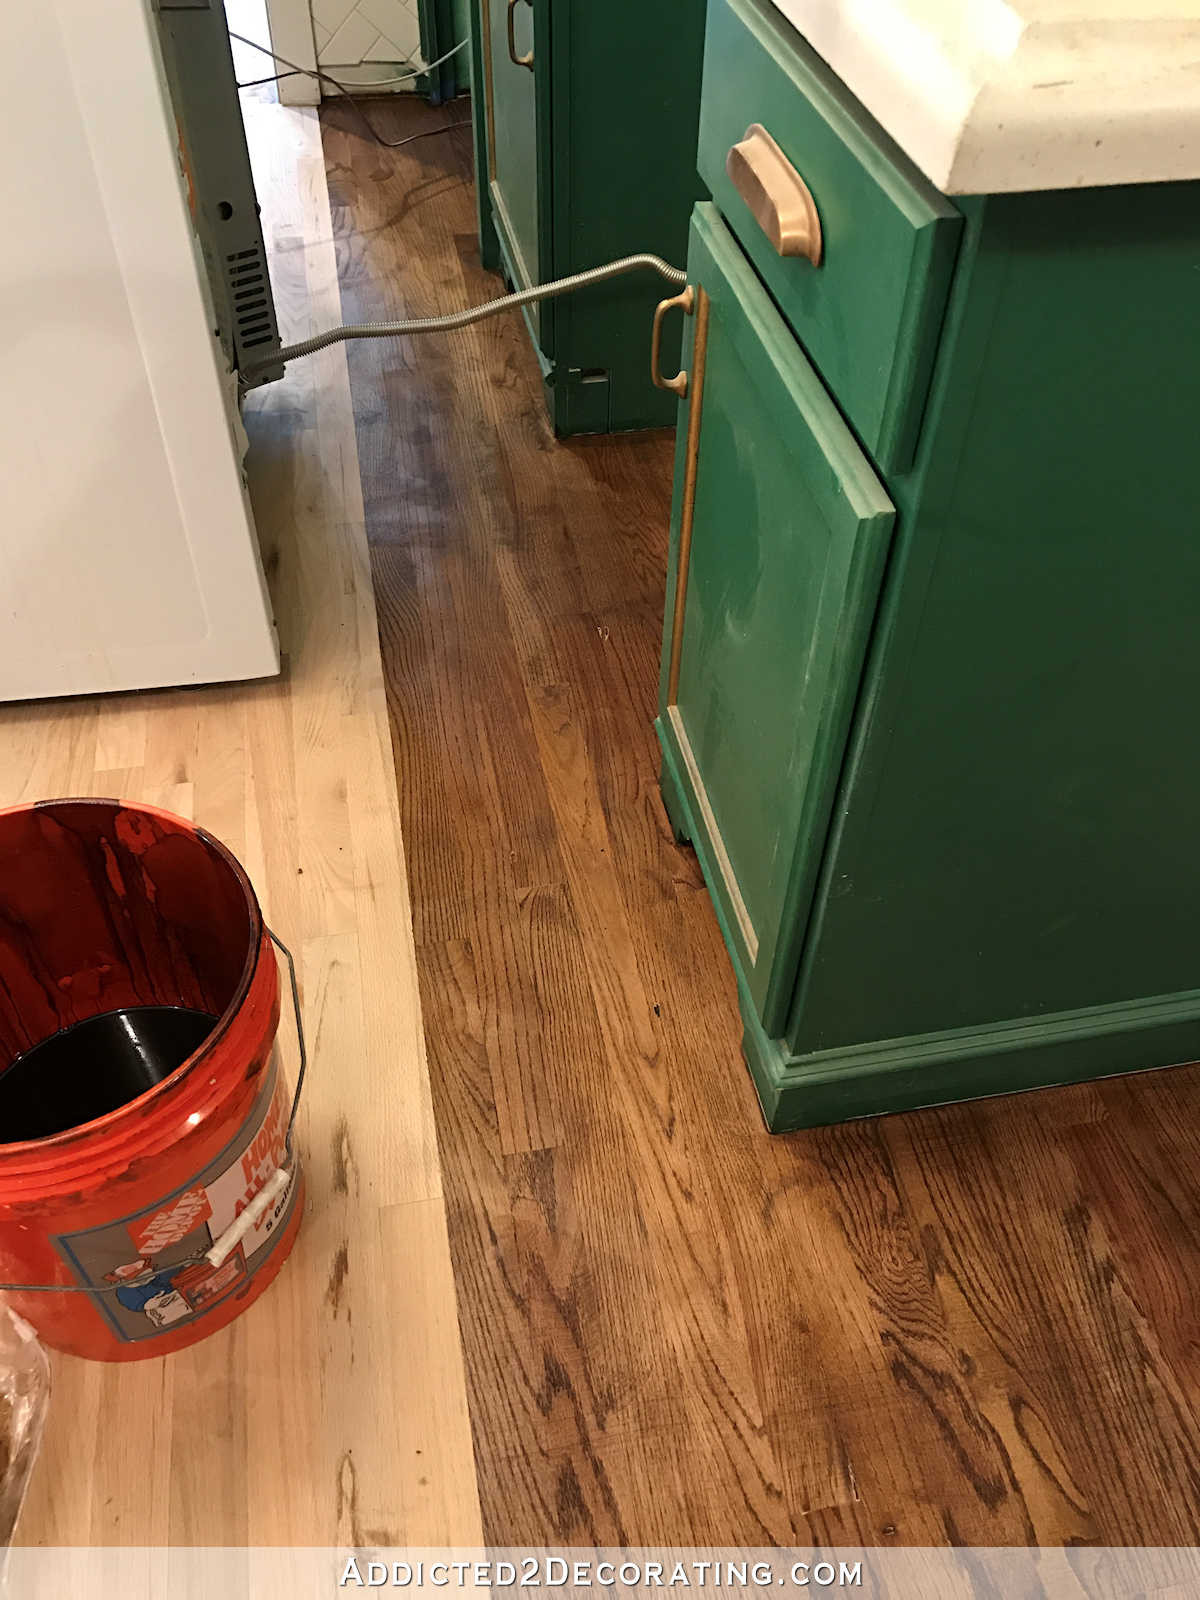 15 Stylish How to Refinish Hardwood Floors Yourself without Sanding 2021 free download how to refinish hardwood floors yourself without sanding of adventures in staining my red oak hardwood floors products process in staining red oak hardwood floors 10 stain on kitchen floor b